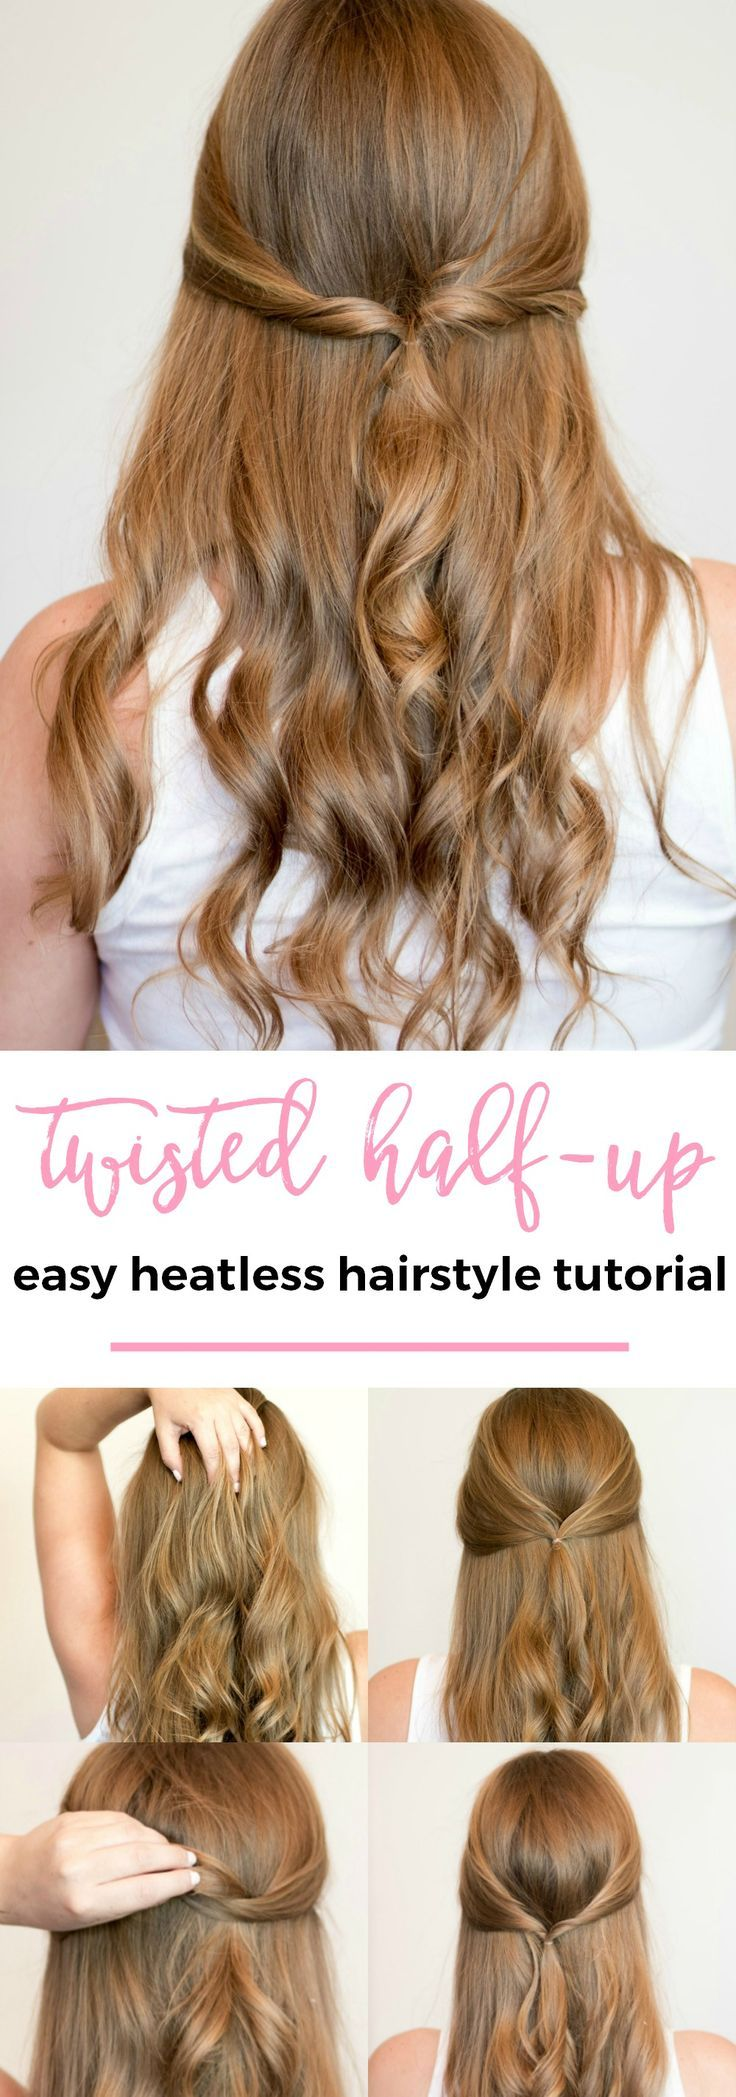 Easy heatless hairstyles for long hair the best of beauty